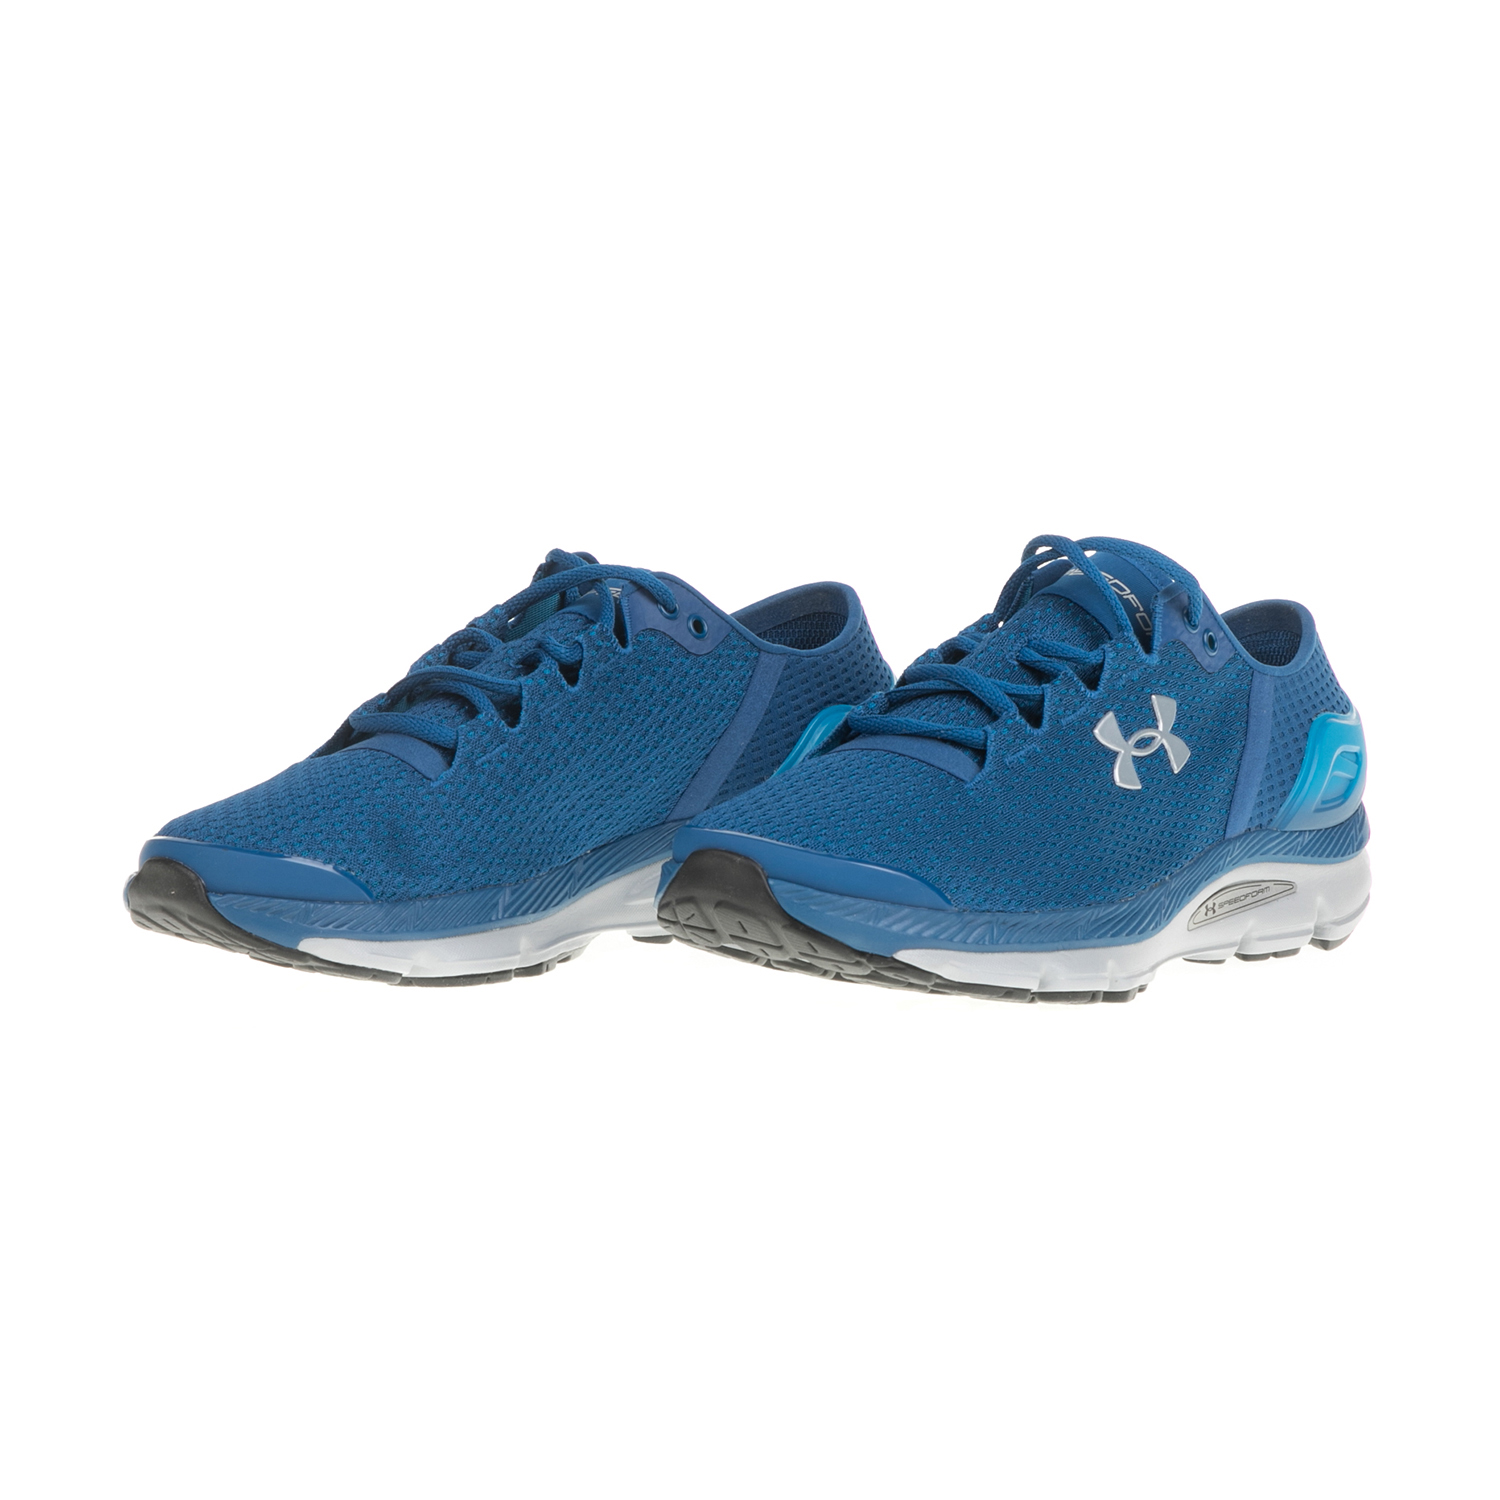 8d0c35a5b30c UNDER ARMOUR – Ανδρικά αθλητικά παπούτσια UNDER ARMOUR Speedform Intake 2  μπλε